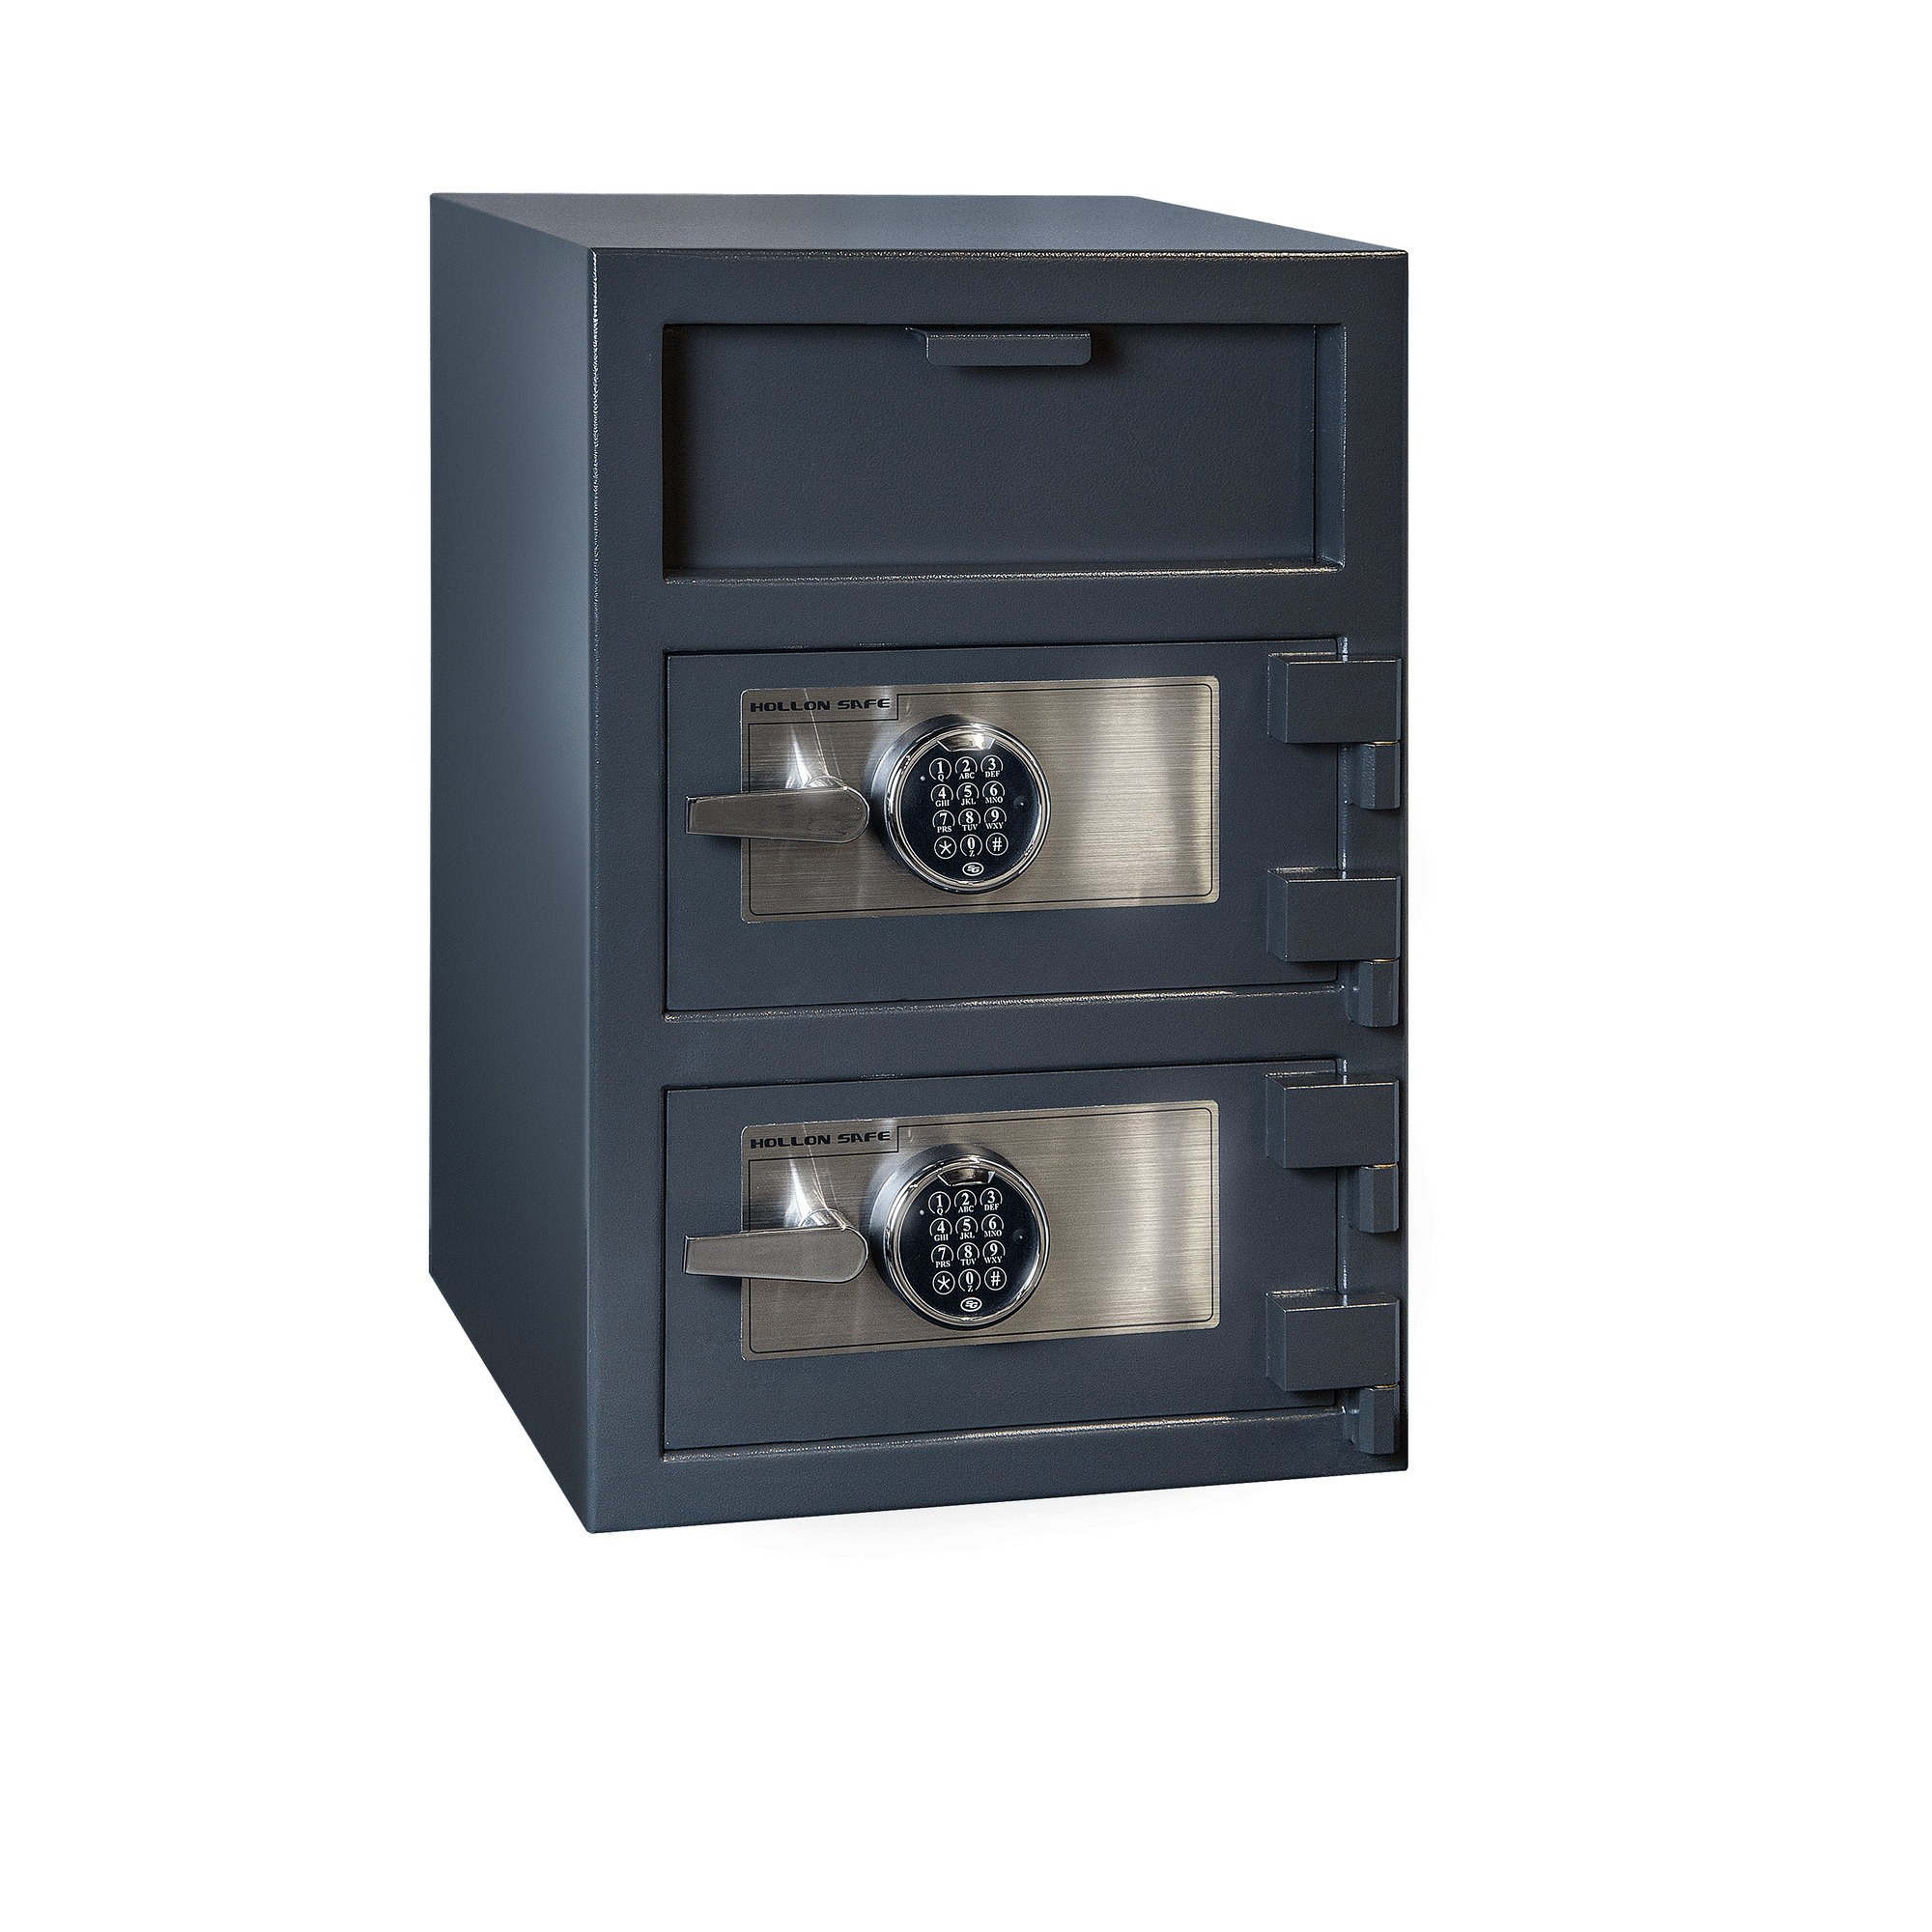 Hollon Safe Deposit Safe Hollon Safe Double Door Depository Safe FDD-3020EE FDD-3020EE